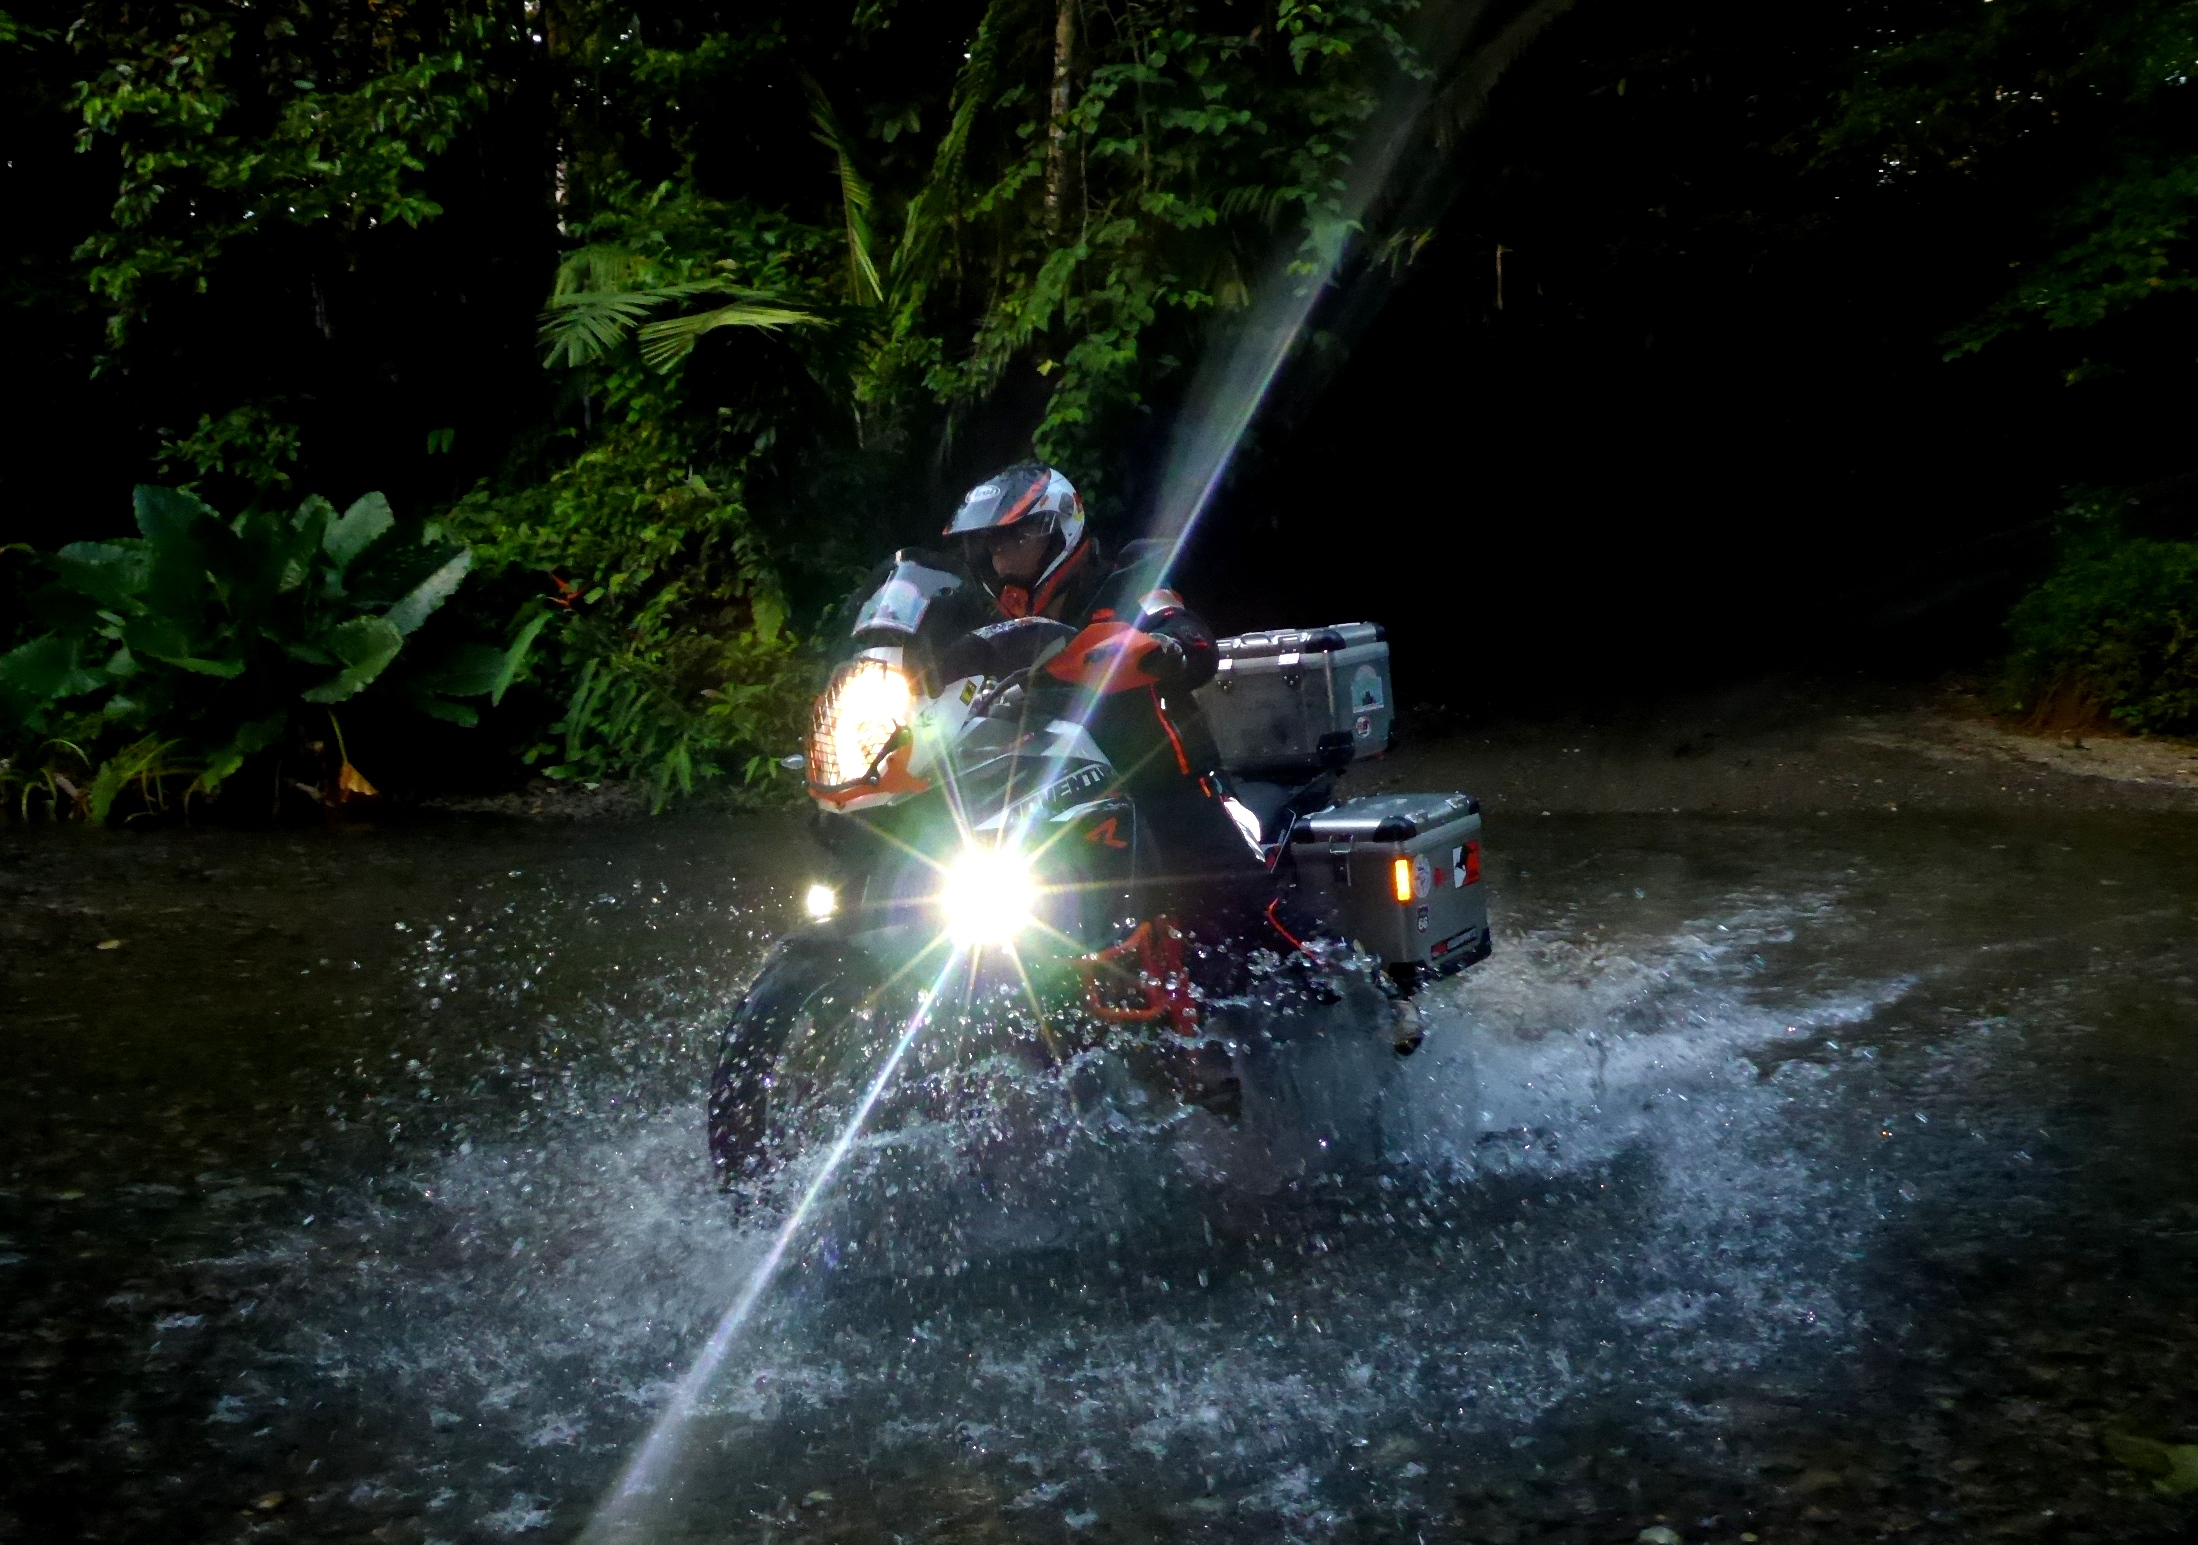 Der Vorteil von Regen: tolle Bachdurchfahrten | The advantage of rain: fun riding through the streams